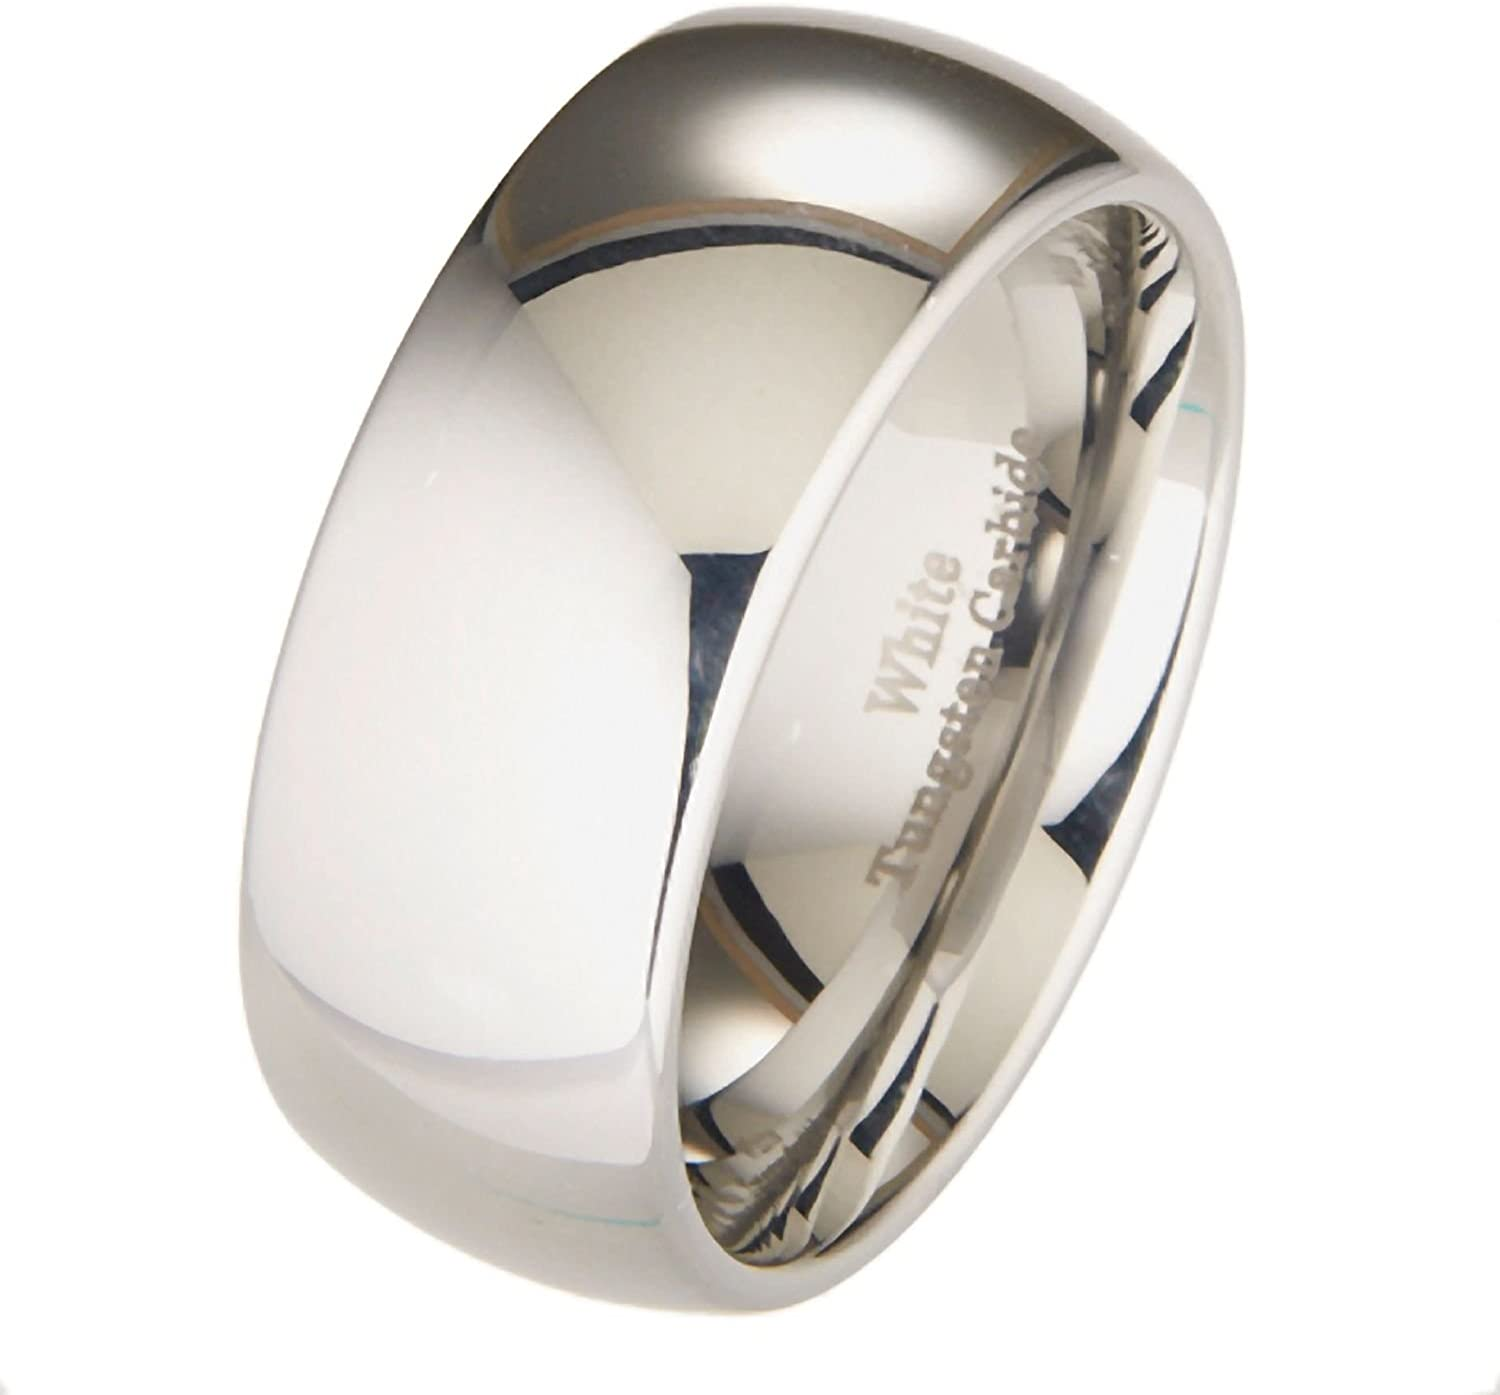 MJ Metals Jewelry Custom Engraved White Tungsten Carbide Wedding Ring Polished Classic 3mm to 10mm